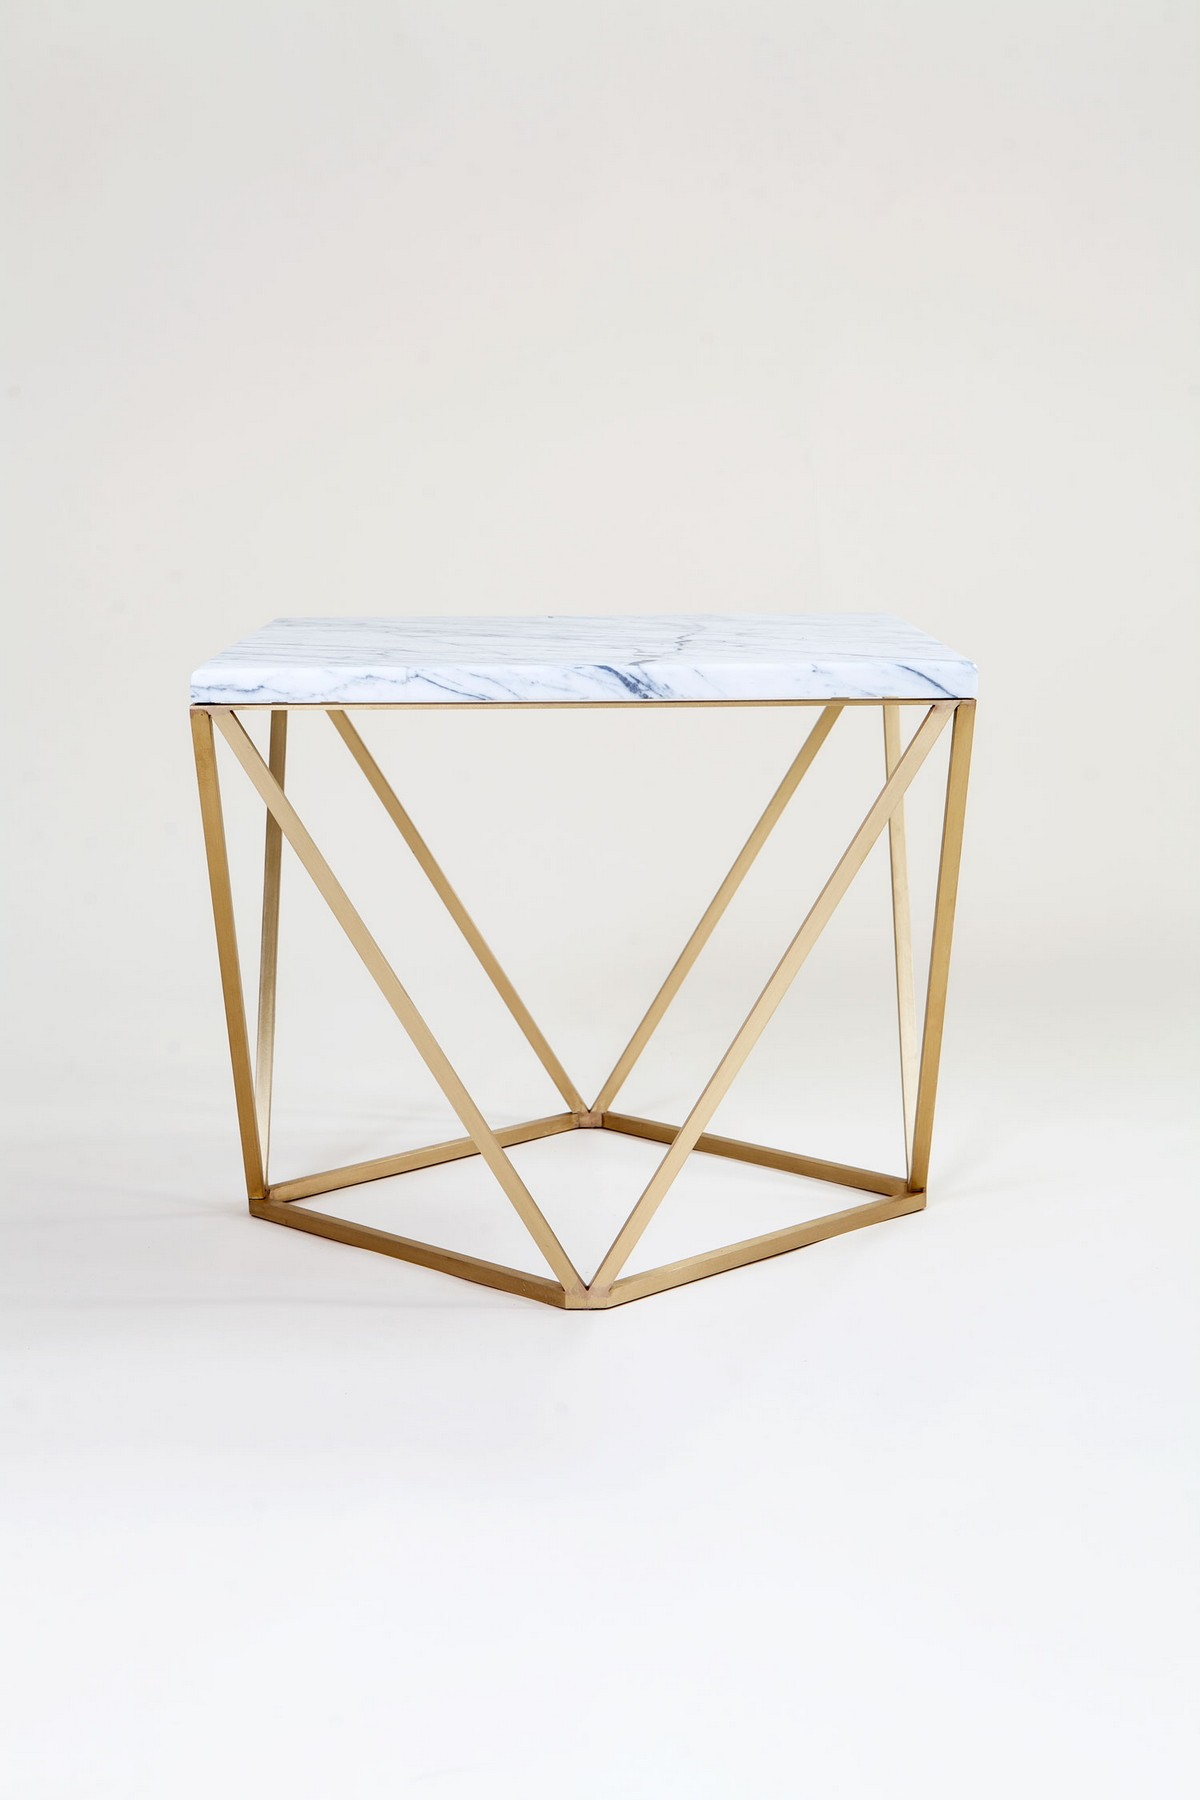 Let Us Show You The Perfect Minimalist Center Table For You | No need to search anymore! We have found a center table that will for sure fulfill all of your desires. #centertables #livingroom #minimalistdesign #interiordesign #homedecor Minimalist Center Table Let Us Show You The Perfect Minimalist Center Table For You dusk side table lo res8